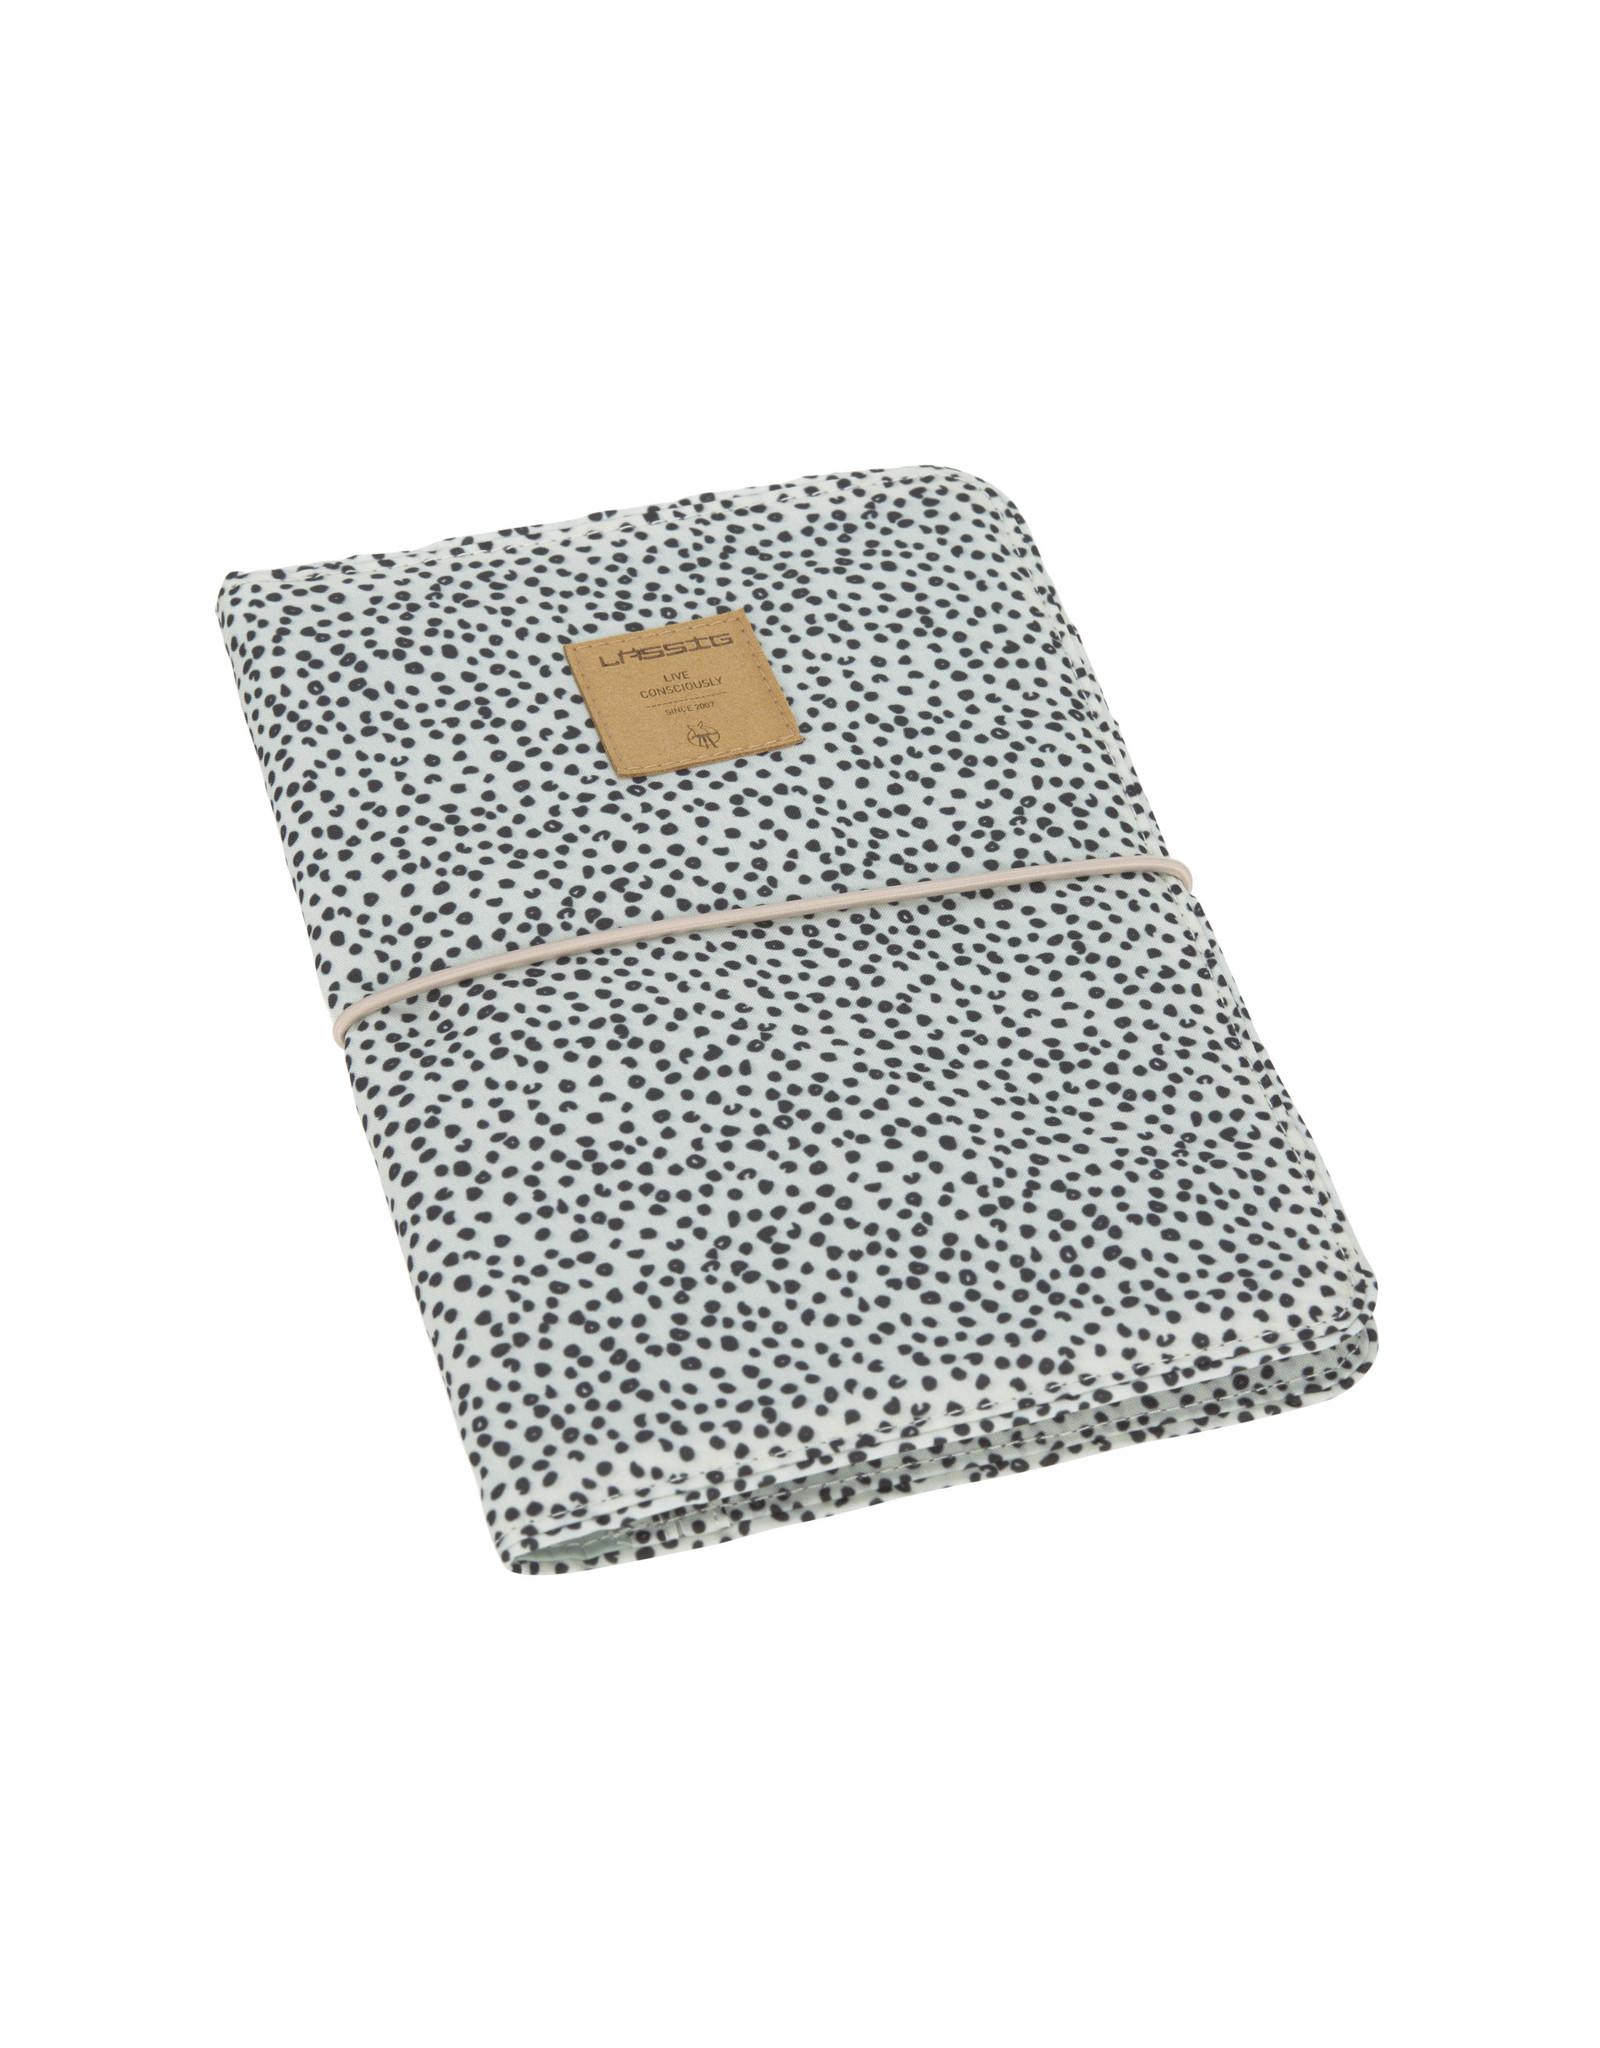 Lassig Lassig Casual Changing Pouch Dotted Offwhite